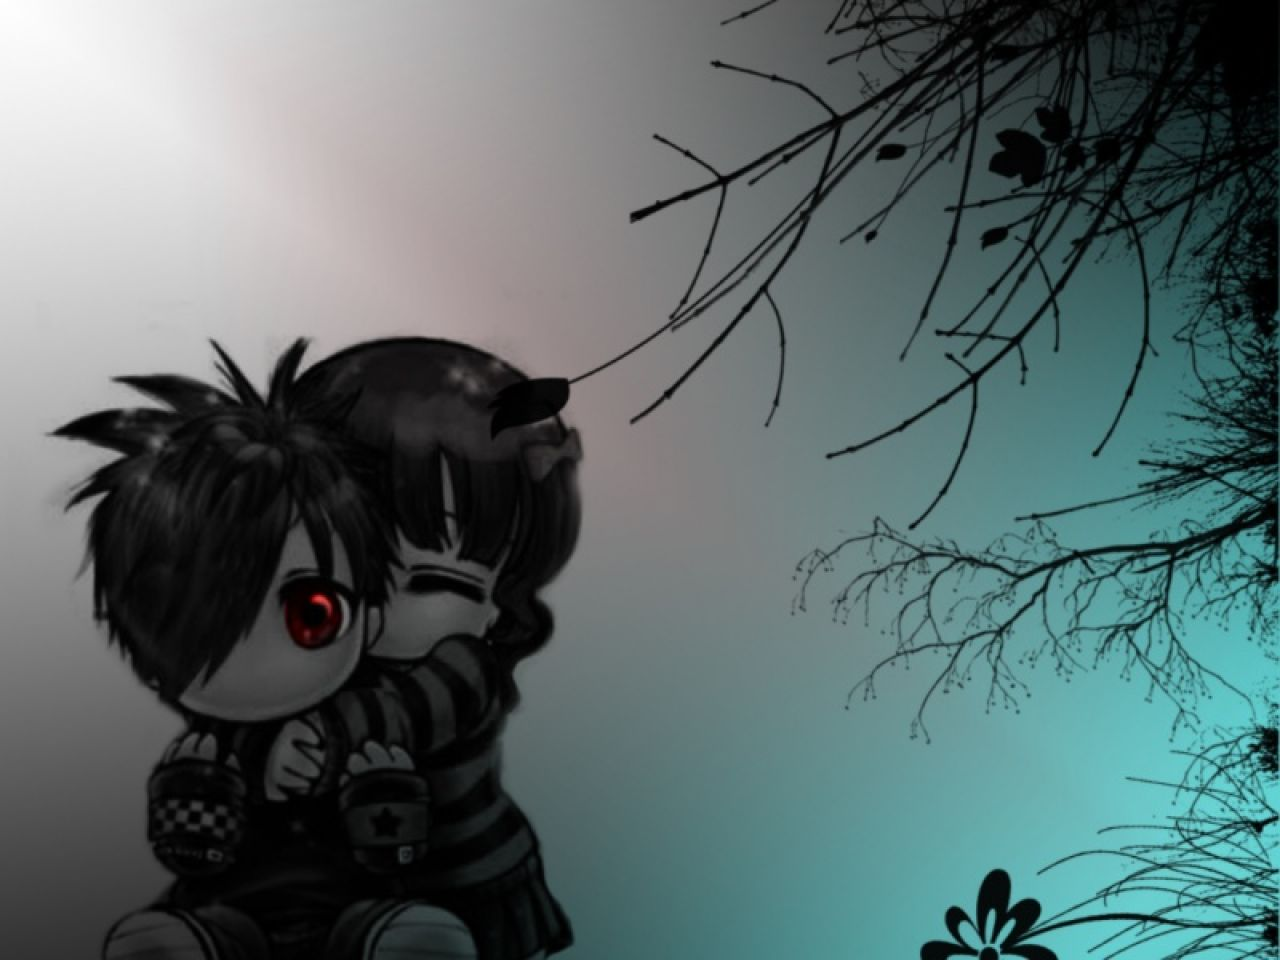 Sad Love Anime 32 Wallpaper   Hdlovewallcom 1280x960